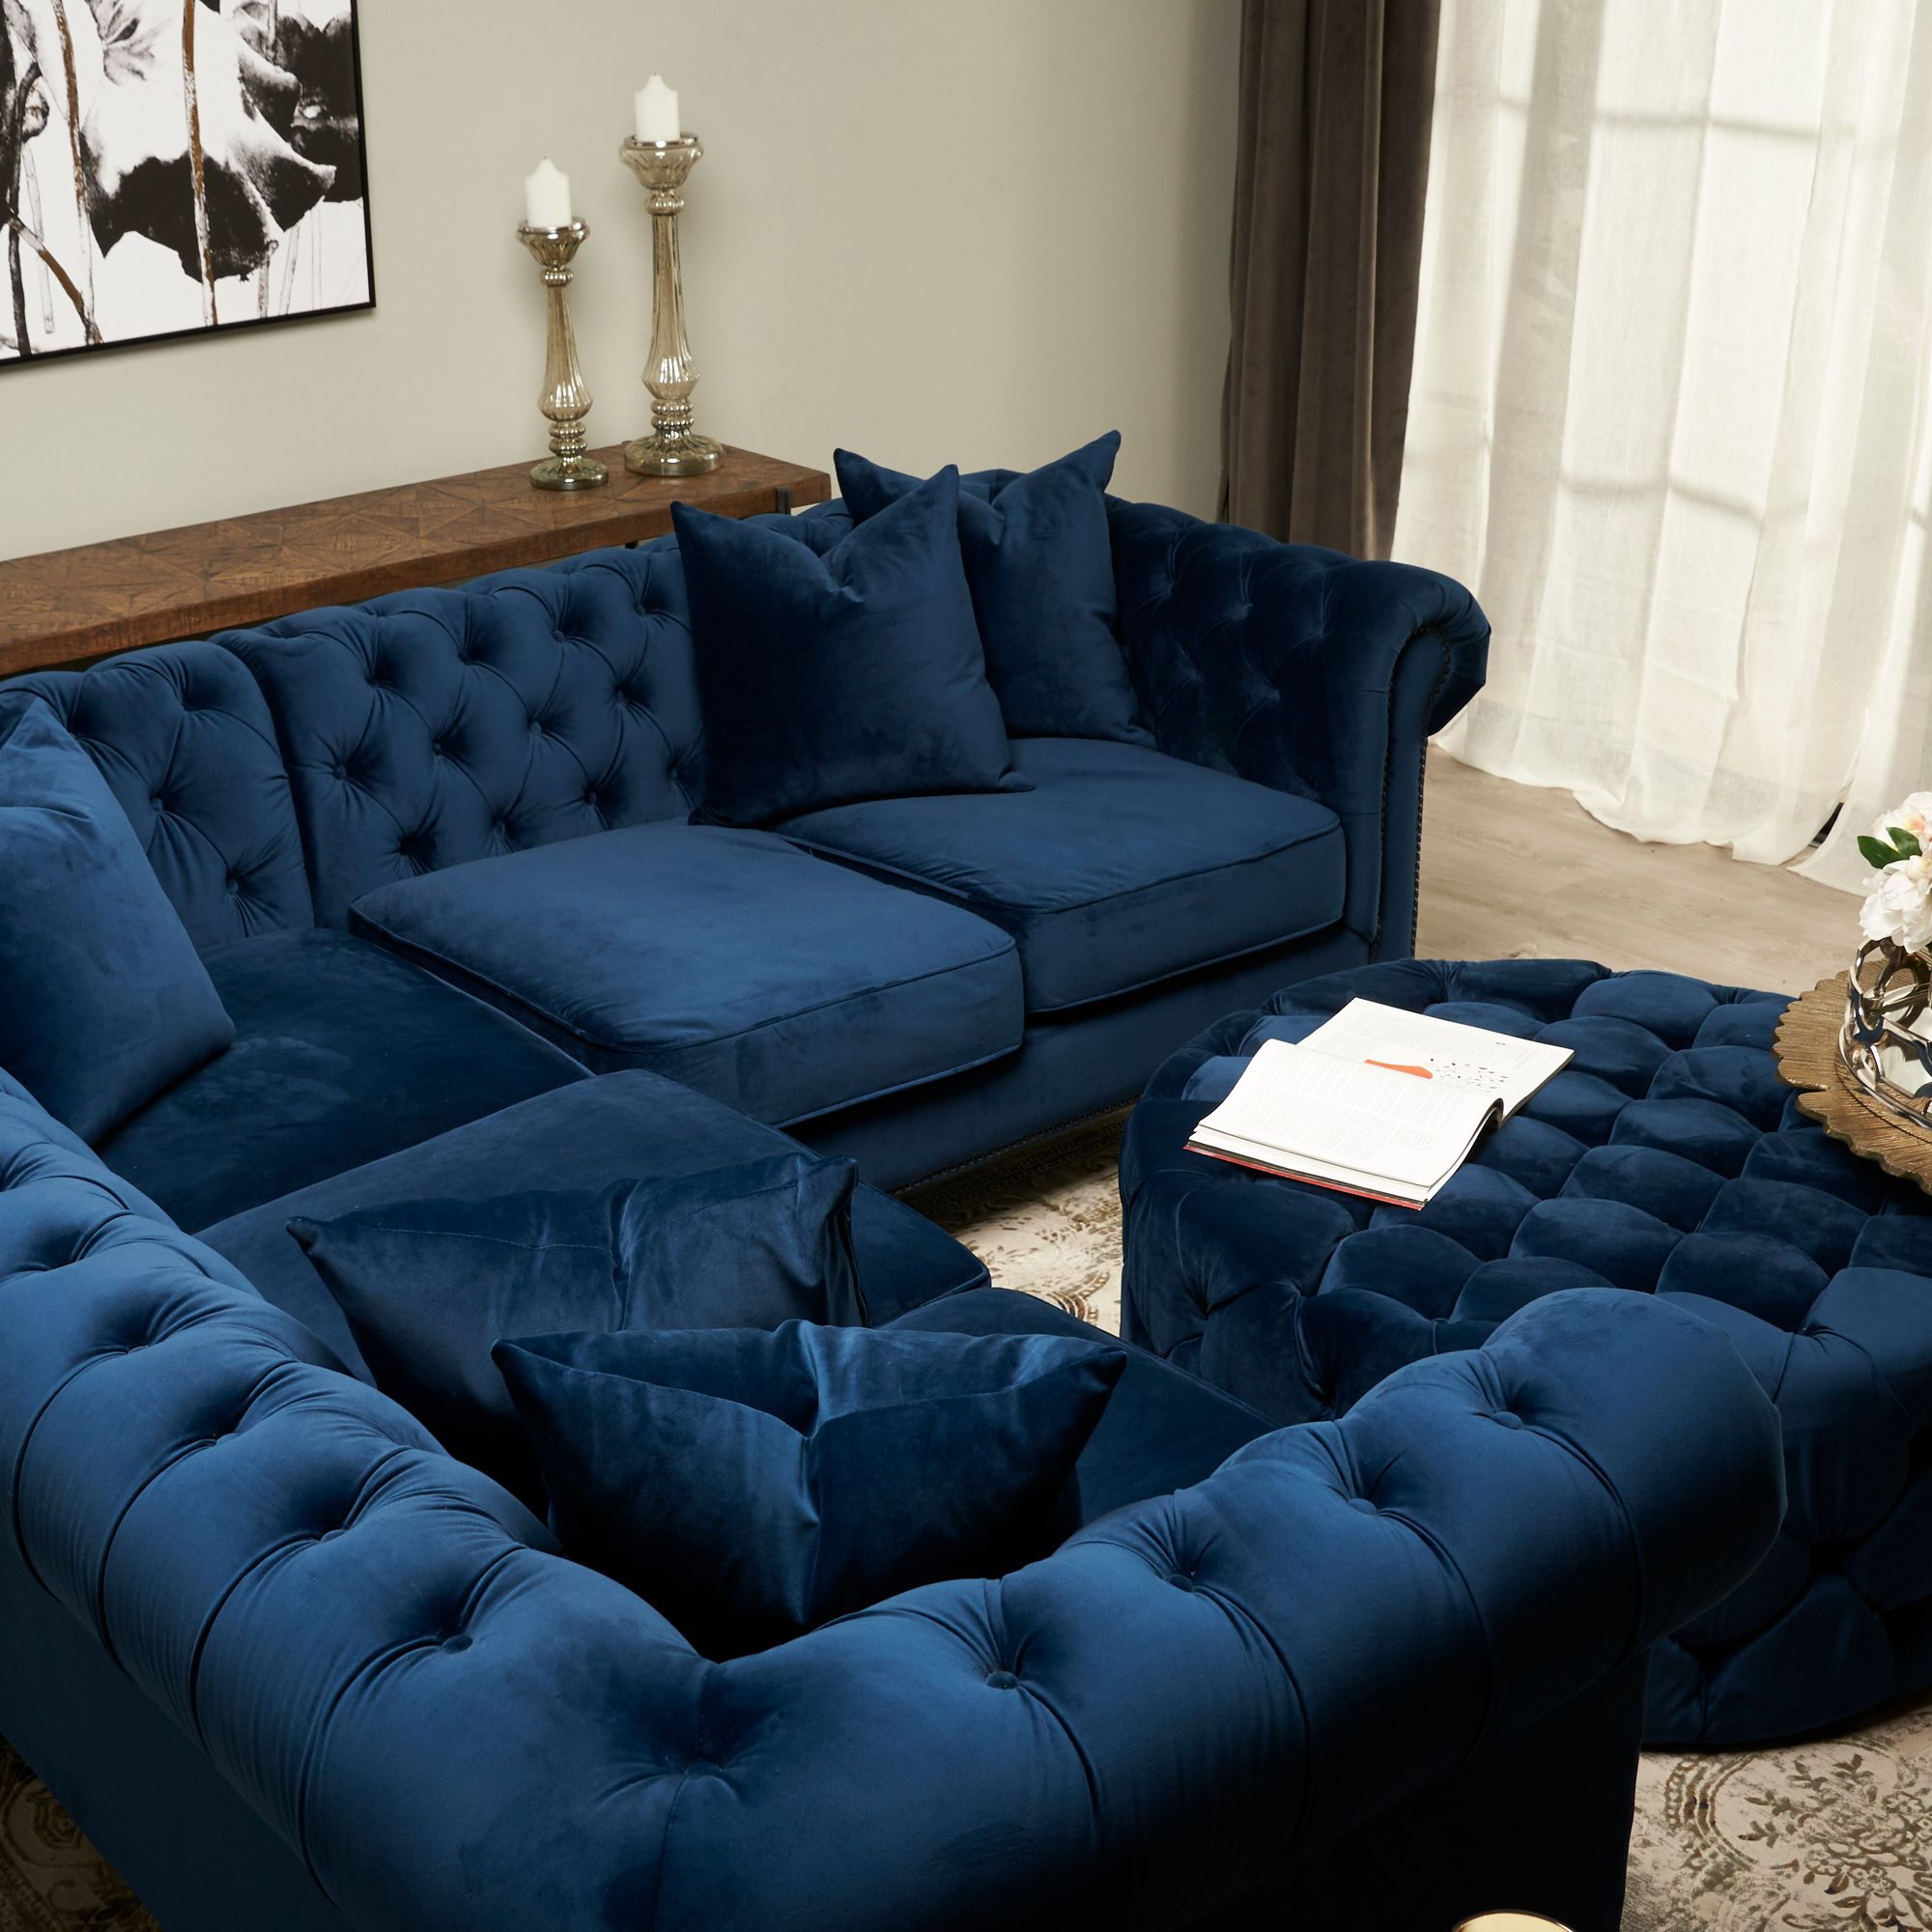 Looking For A Luxurious Velvet Sofa Look No Further Than Our Marcelle Corner Sofa Luxury Furniture Home Decor Bedroom Modern Furniture Stores #no #couch #living #room #ideas